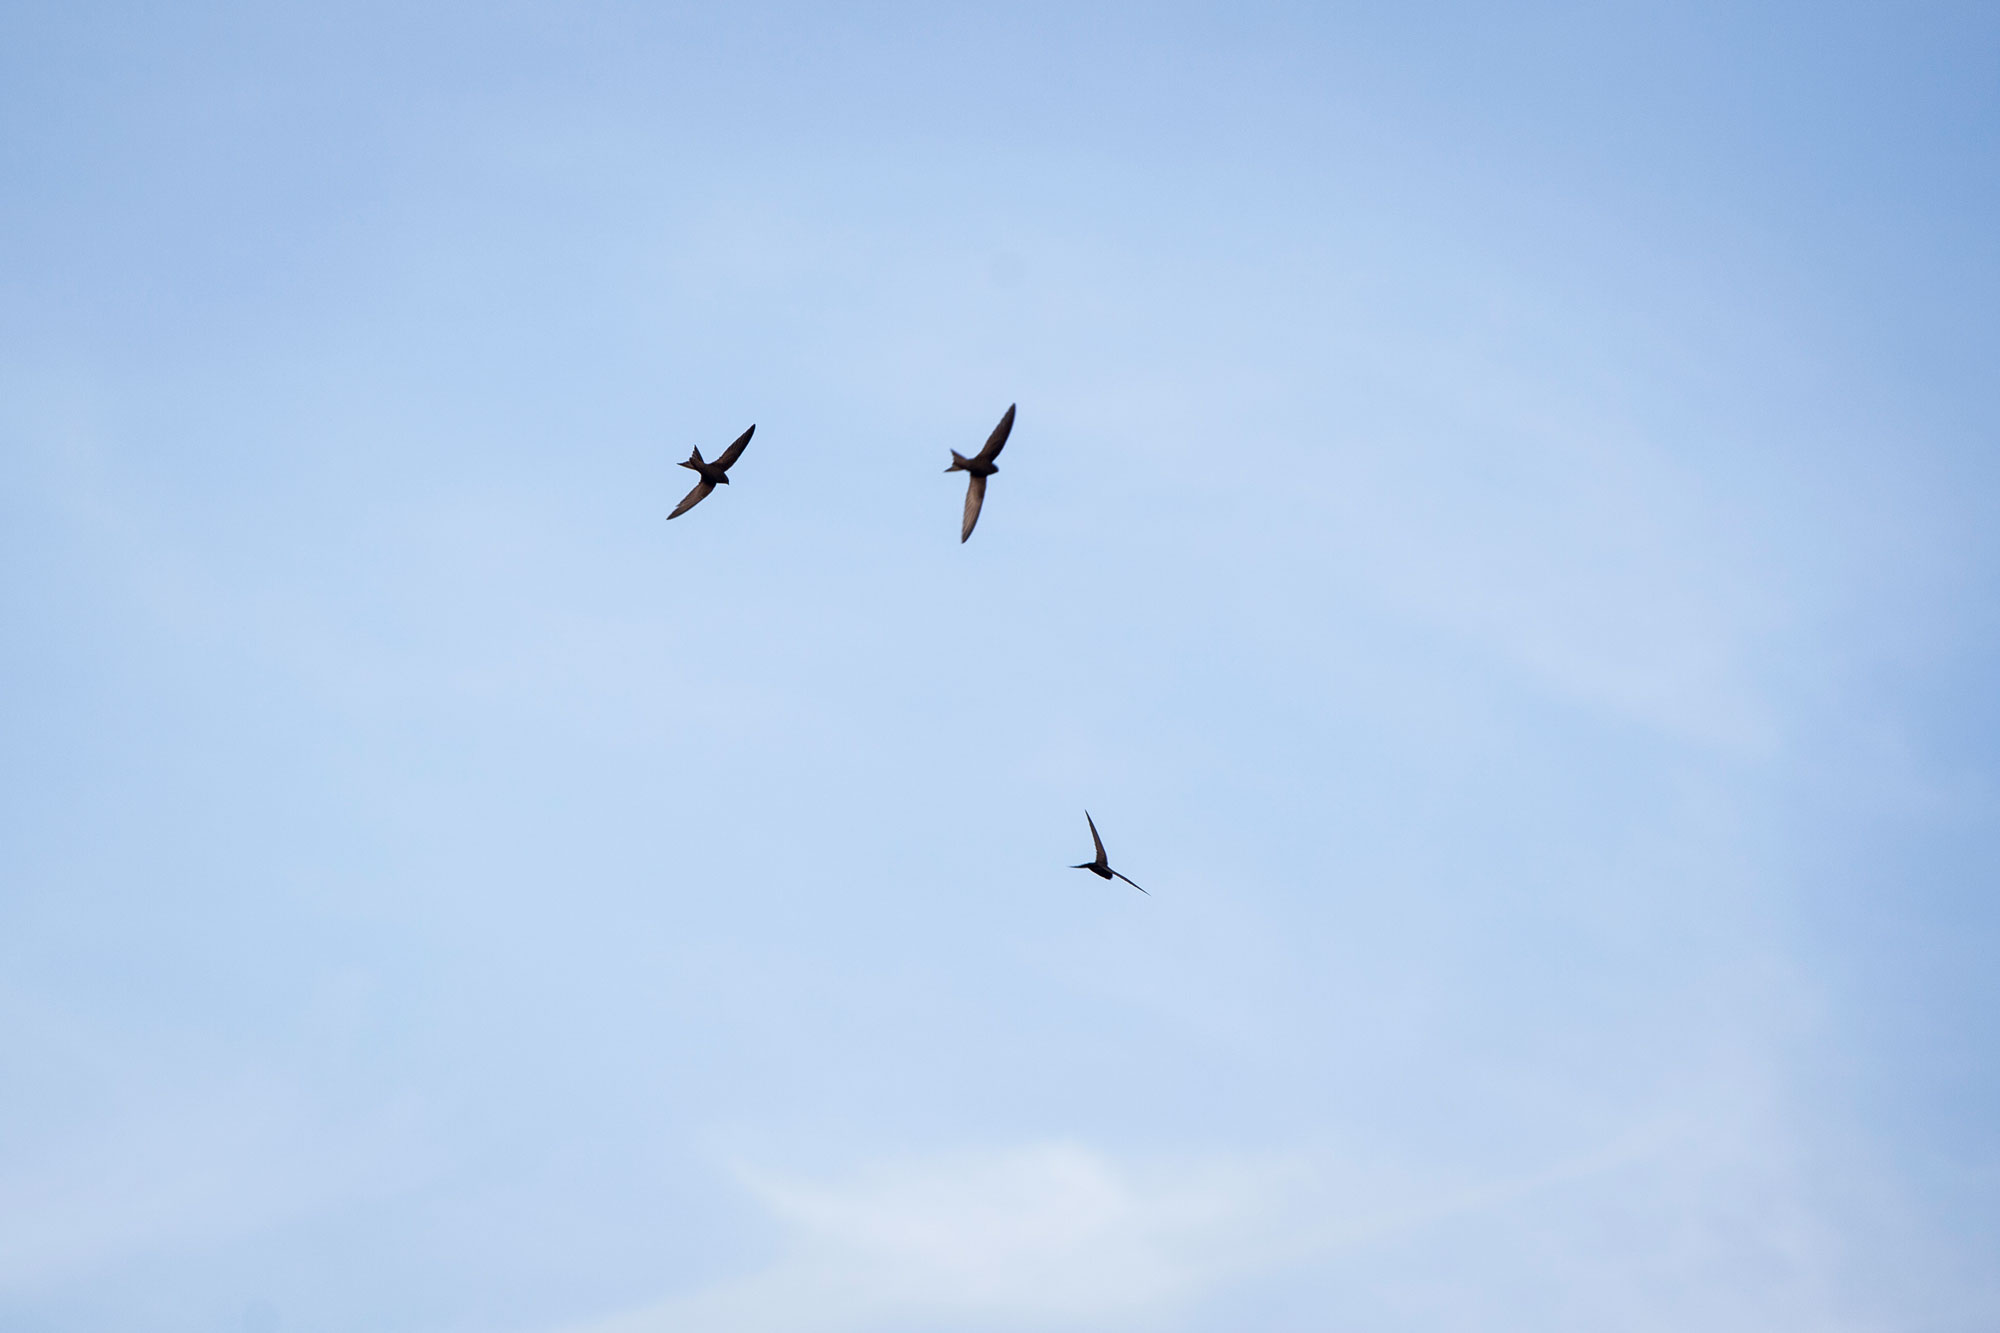 These 3 Swifts have been hanging about togther all season.